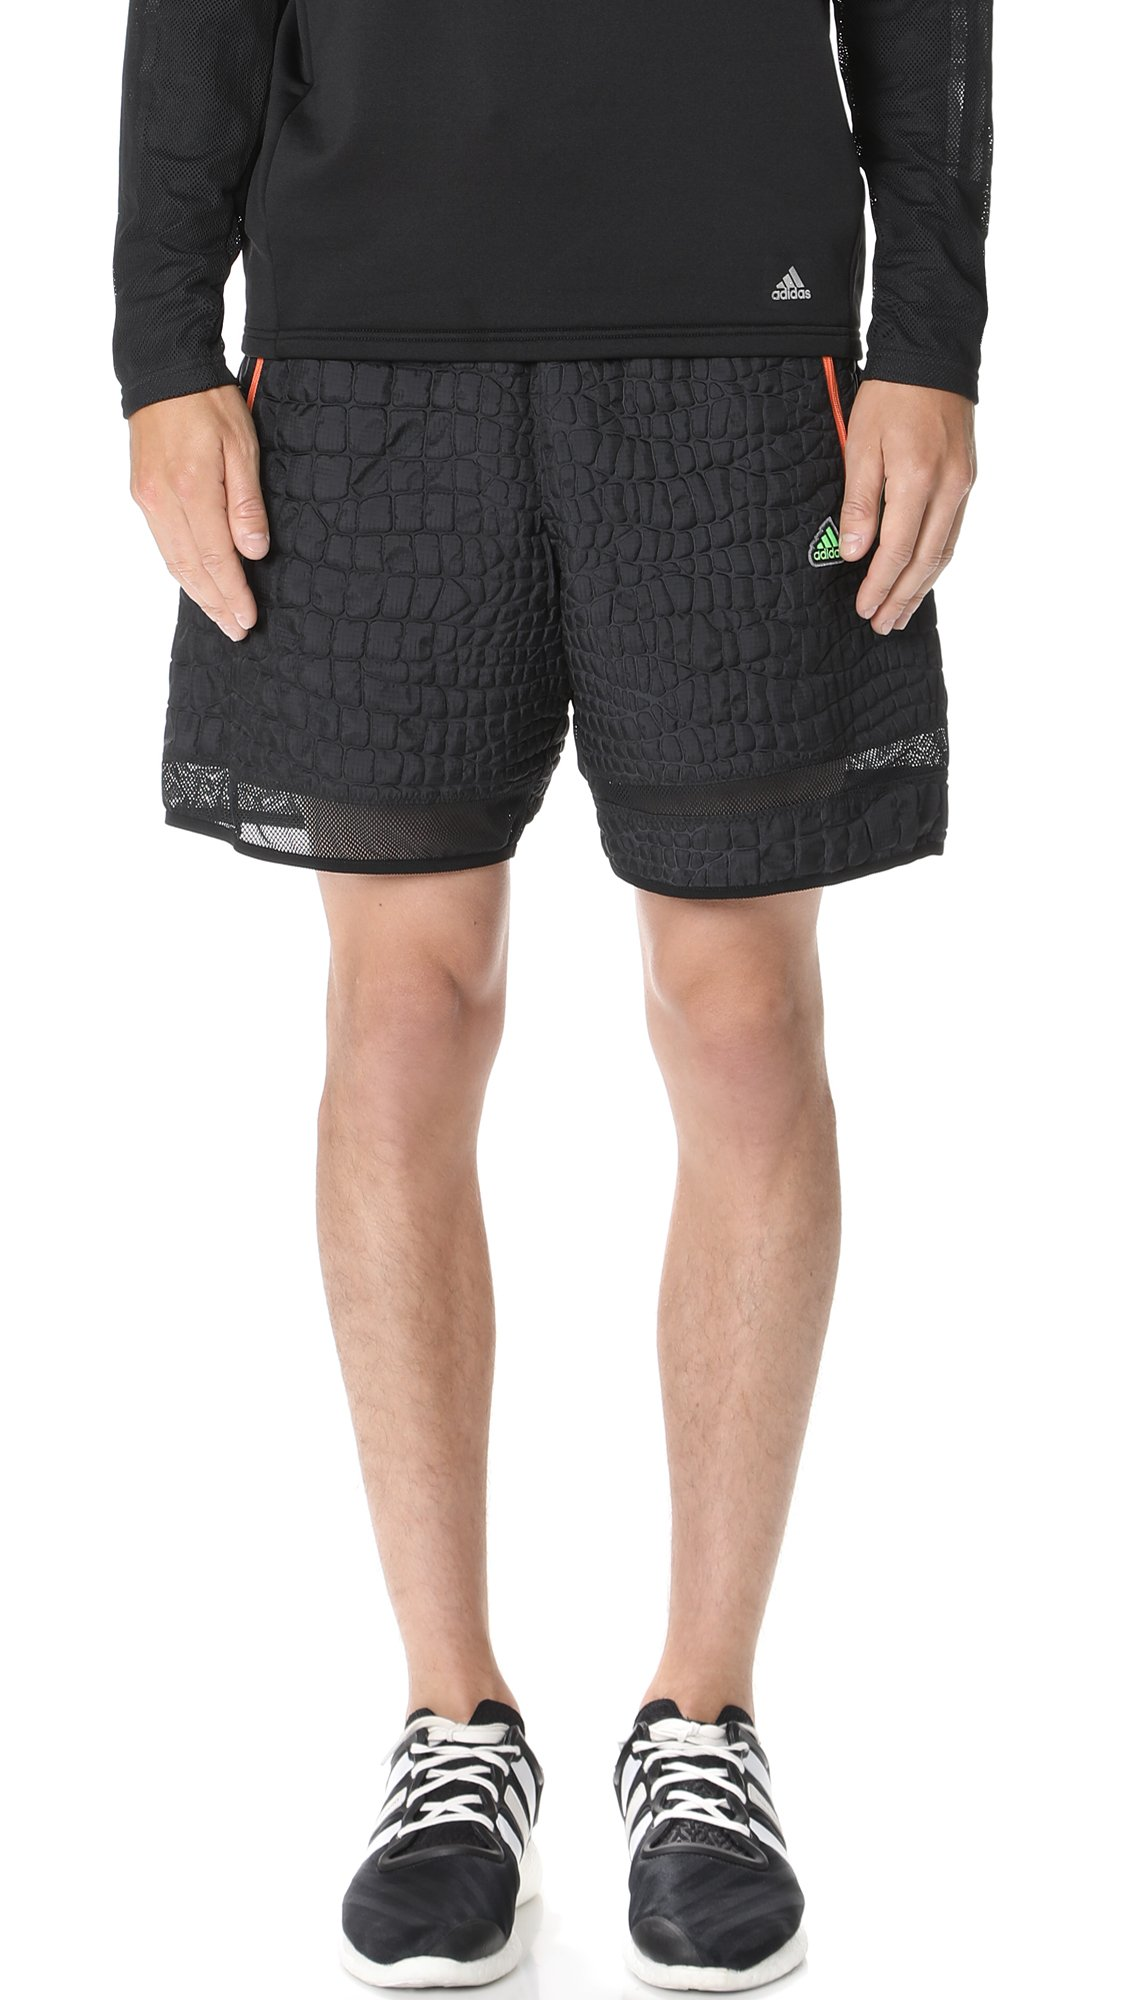 Adidas by Kolor Men's Embossed Shorts, Black, Medium